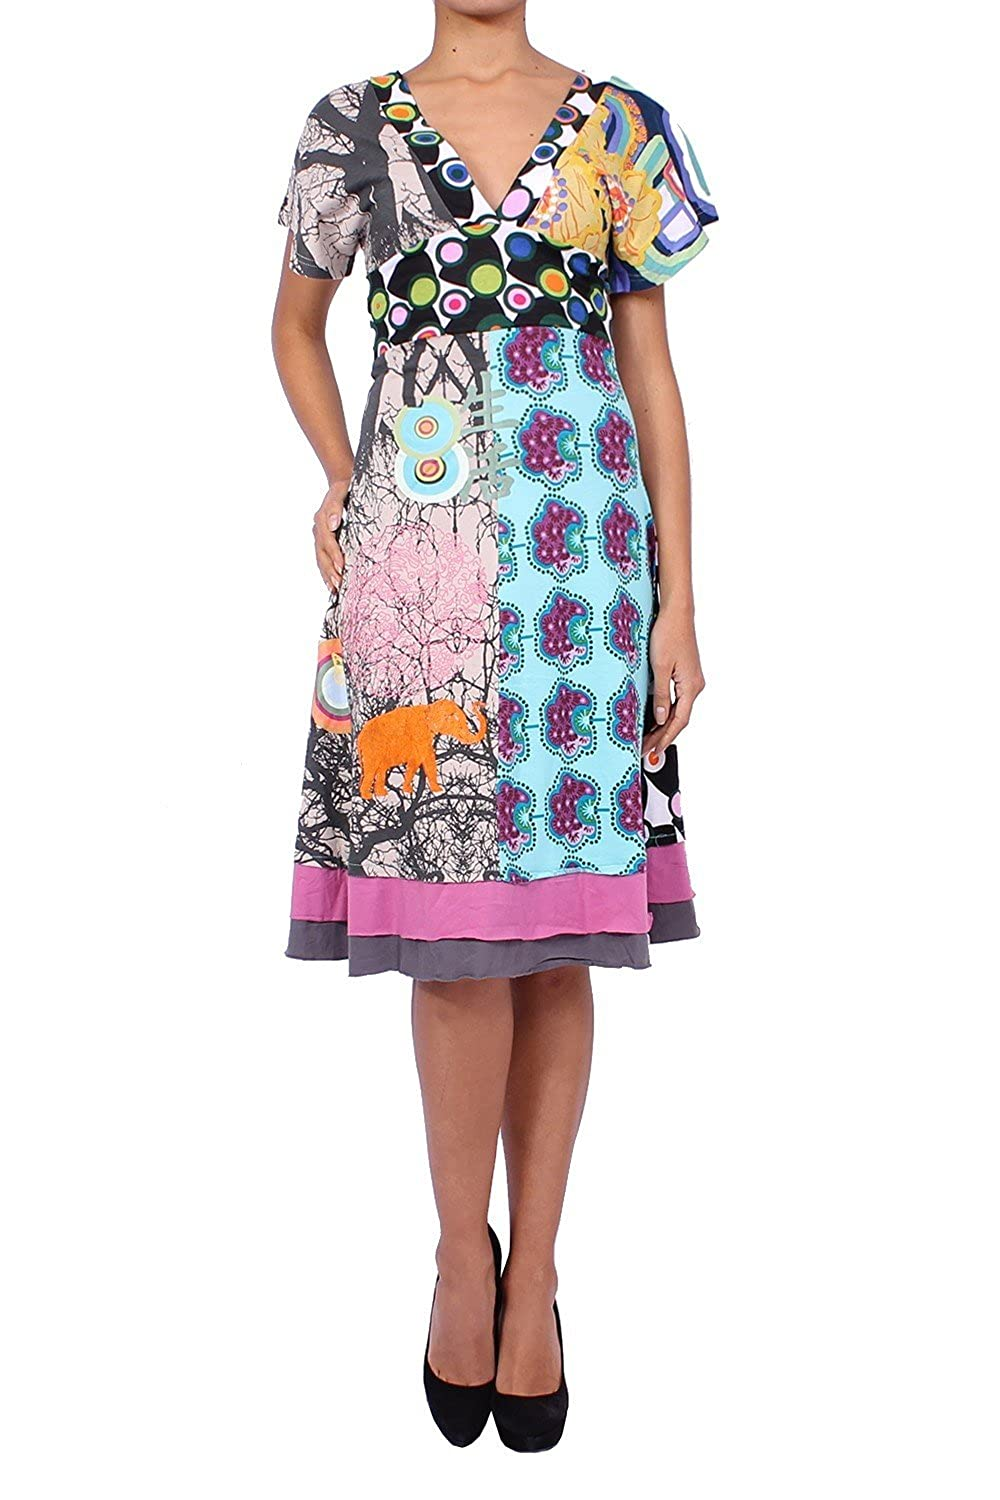 DESIGUAL -Women's Cotton Dress